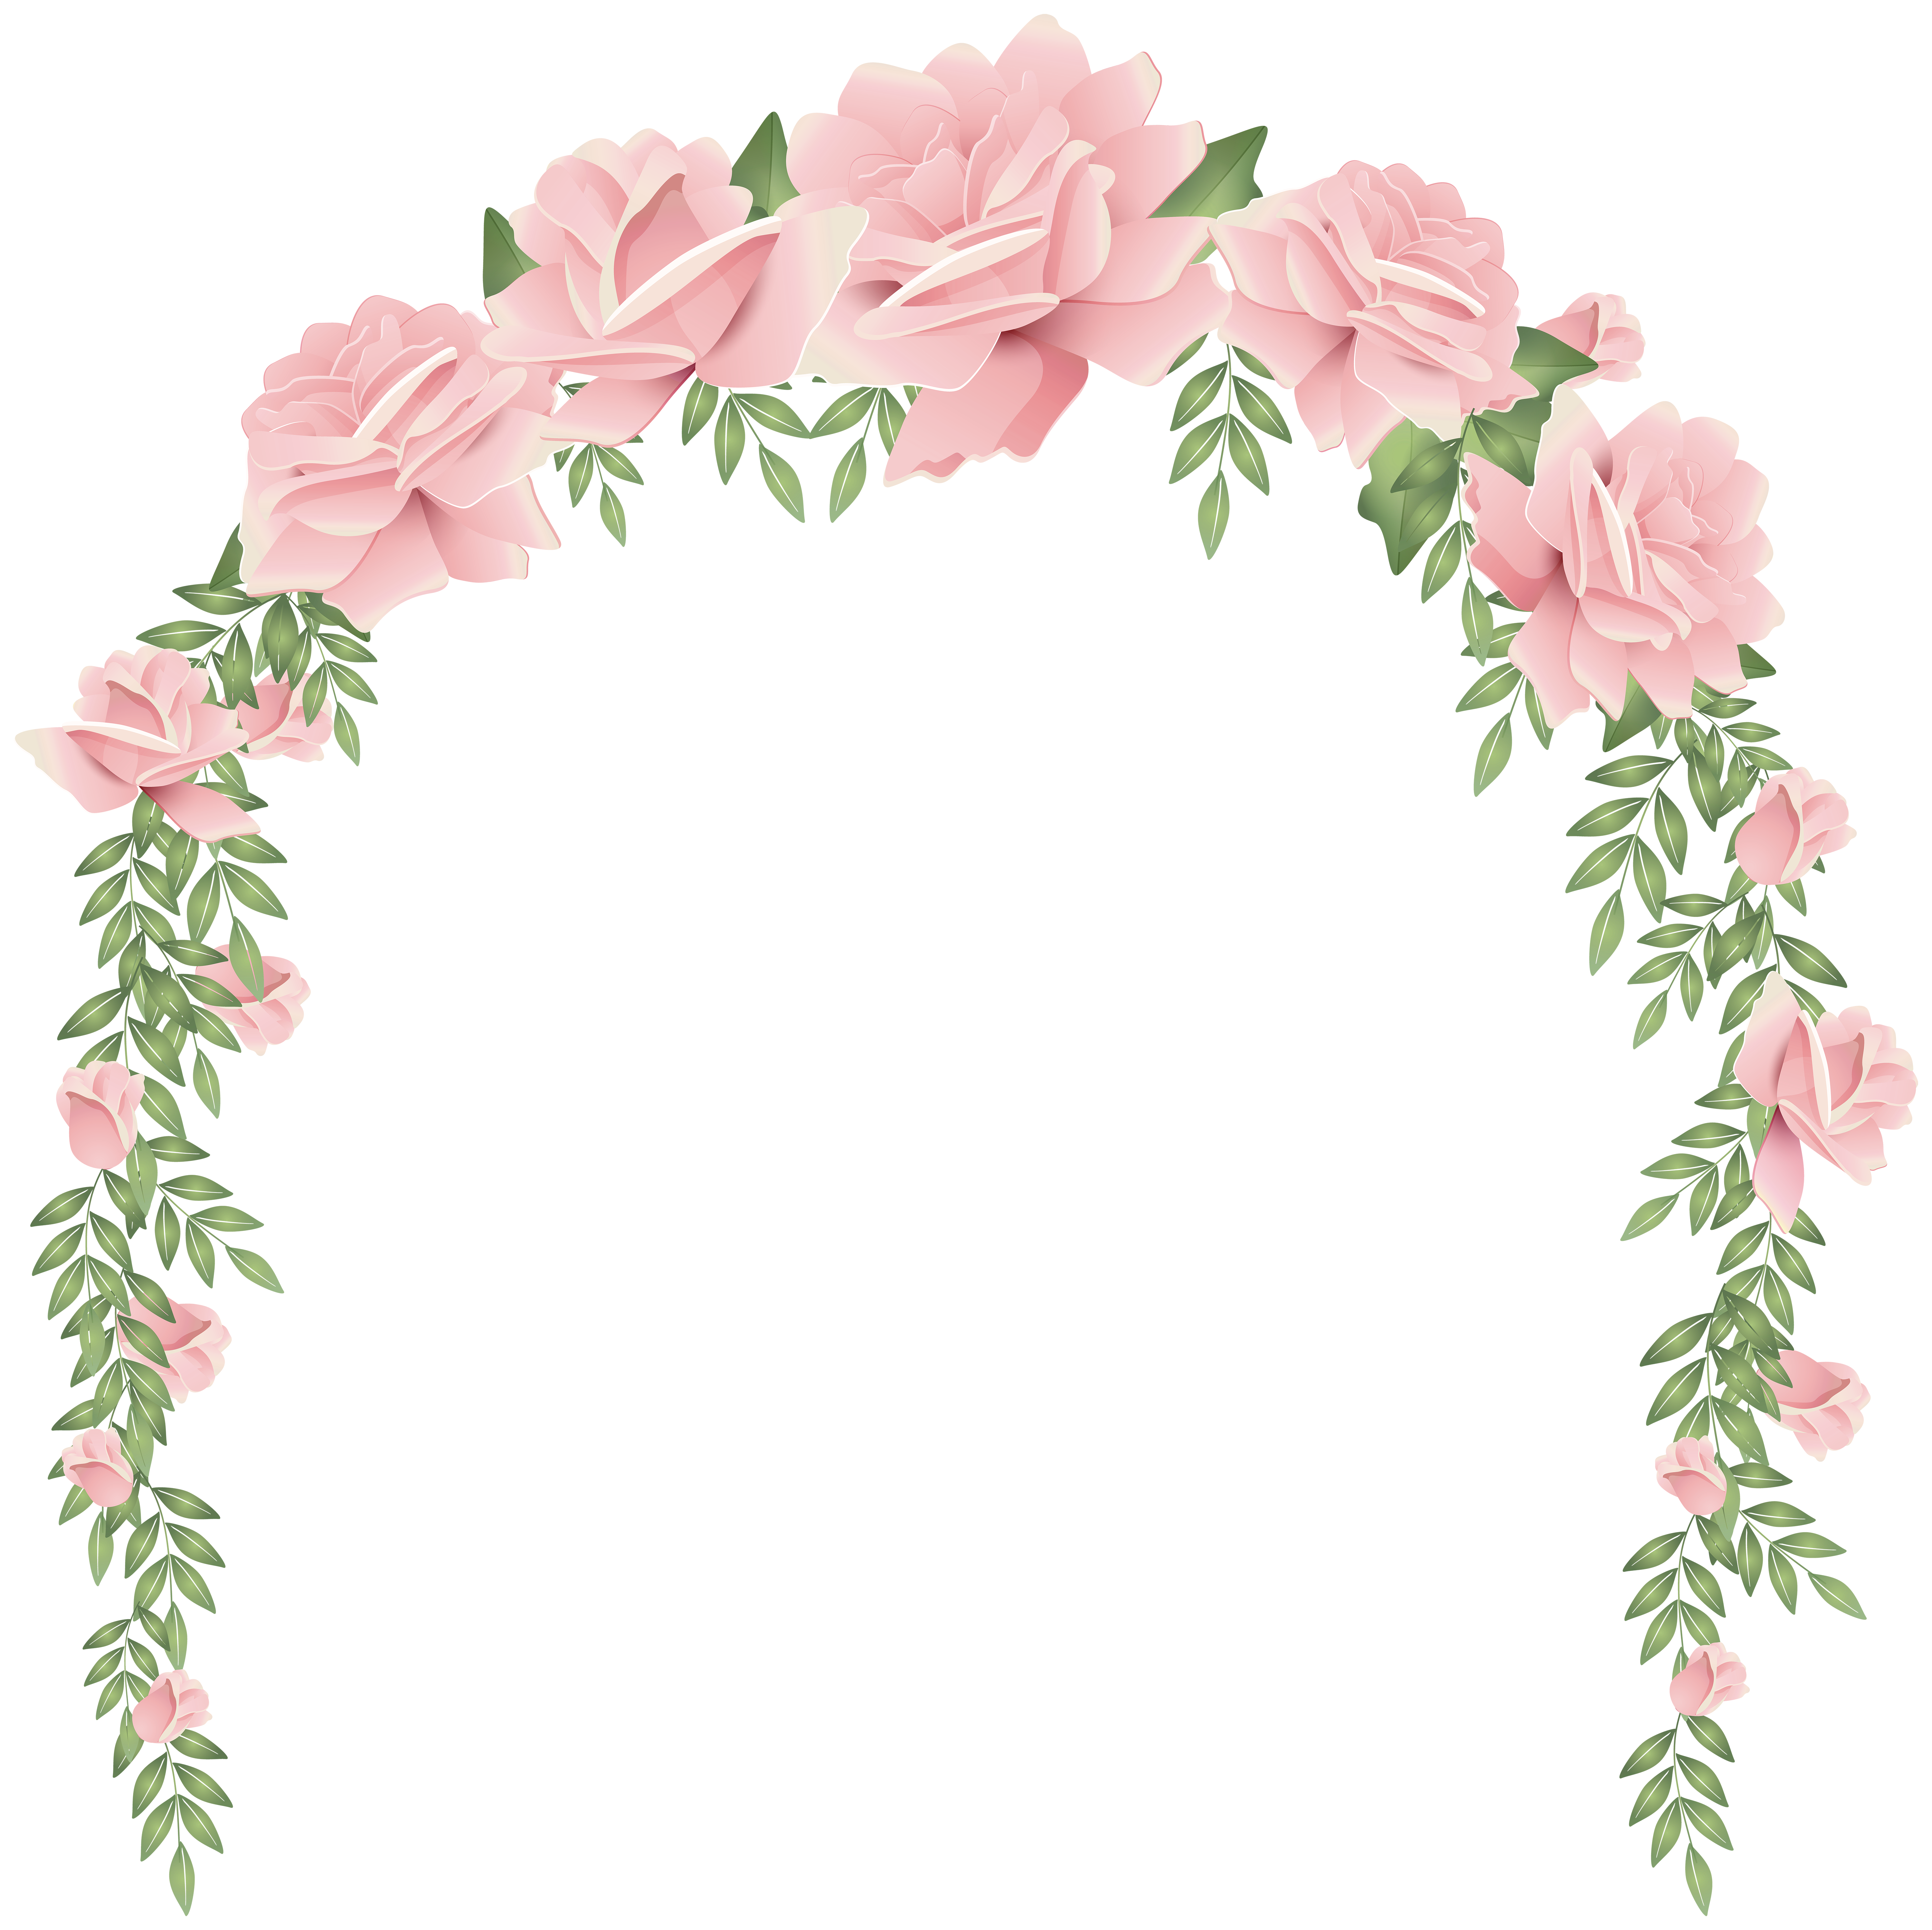 Flower arch clipart picture royalty free download Rose Arch Decorative Transparent Image | Gallery Yopriceville ... picture royalty free download